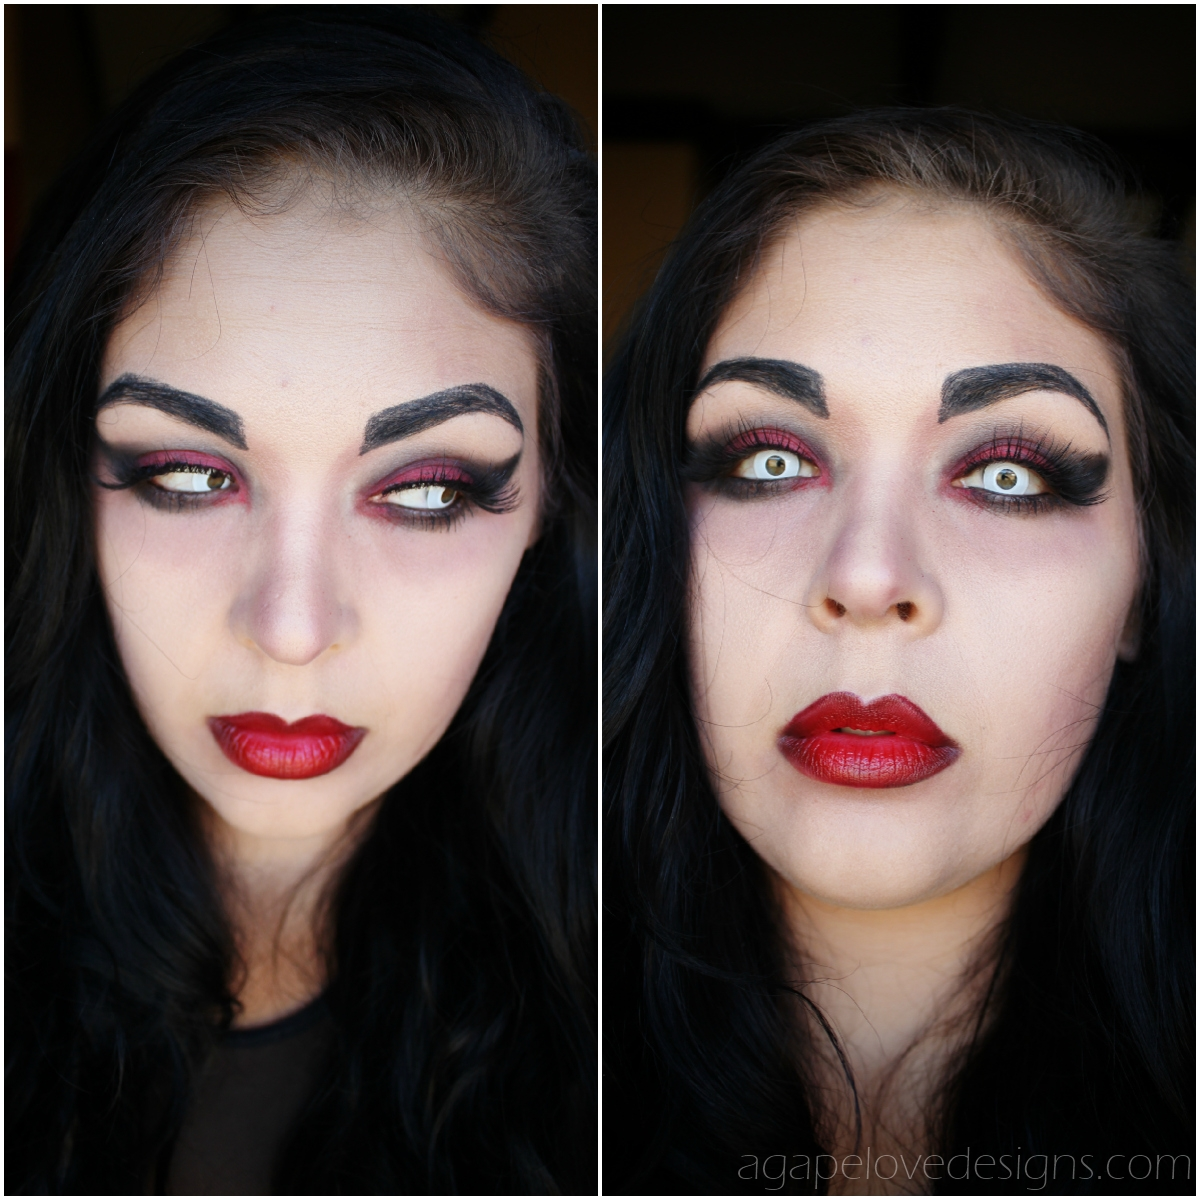 We Can't Get Enough of This Easy Vampire Makeup Tutorial for Halloween. You, too, can recreate this bloodsucking beauty routine.